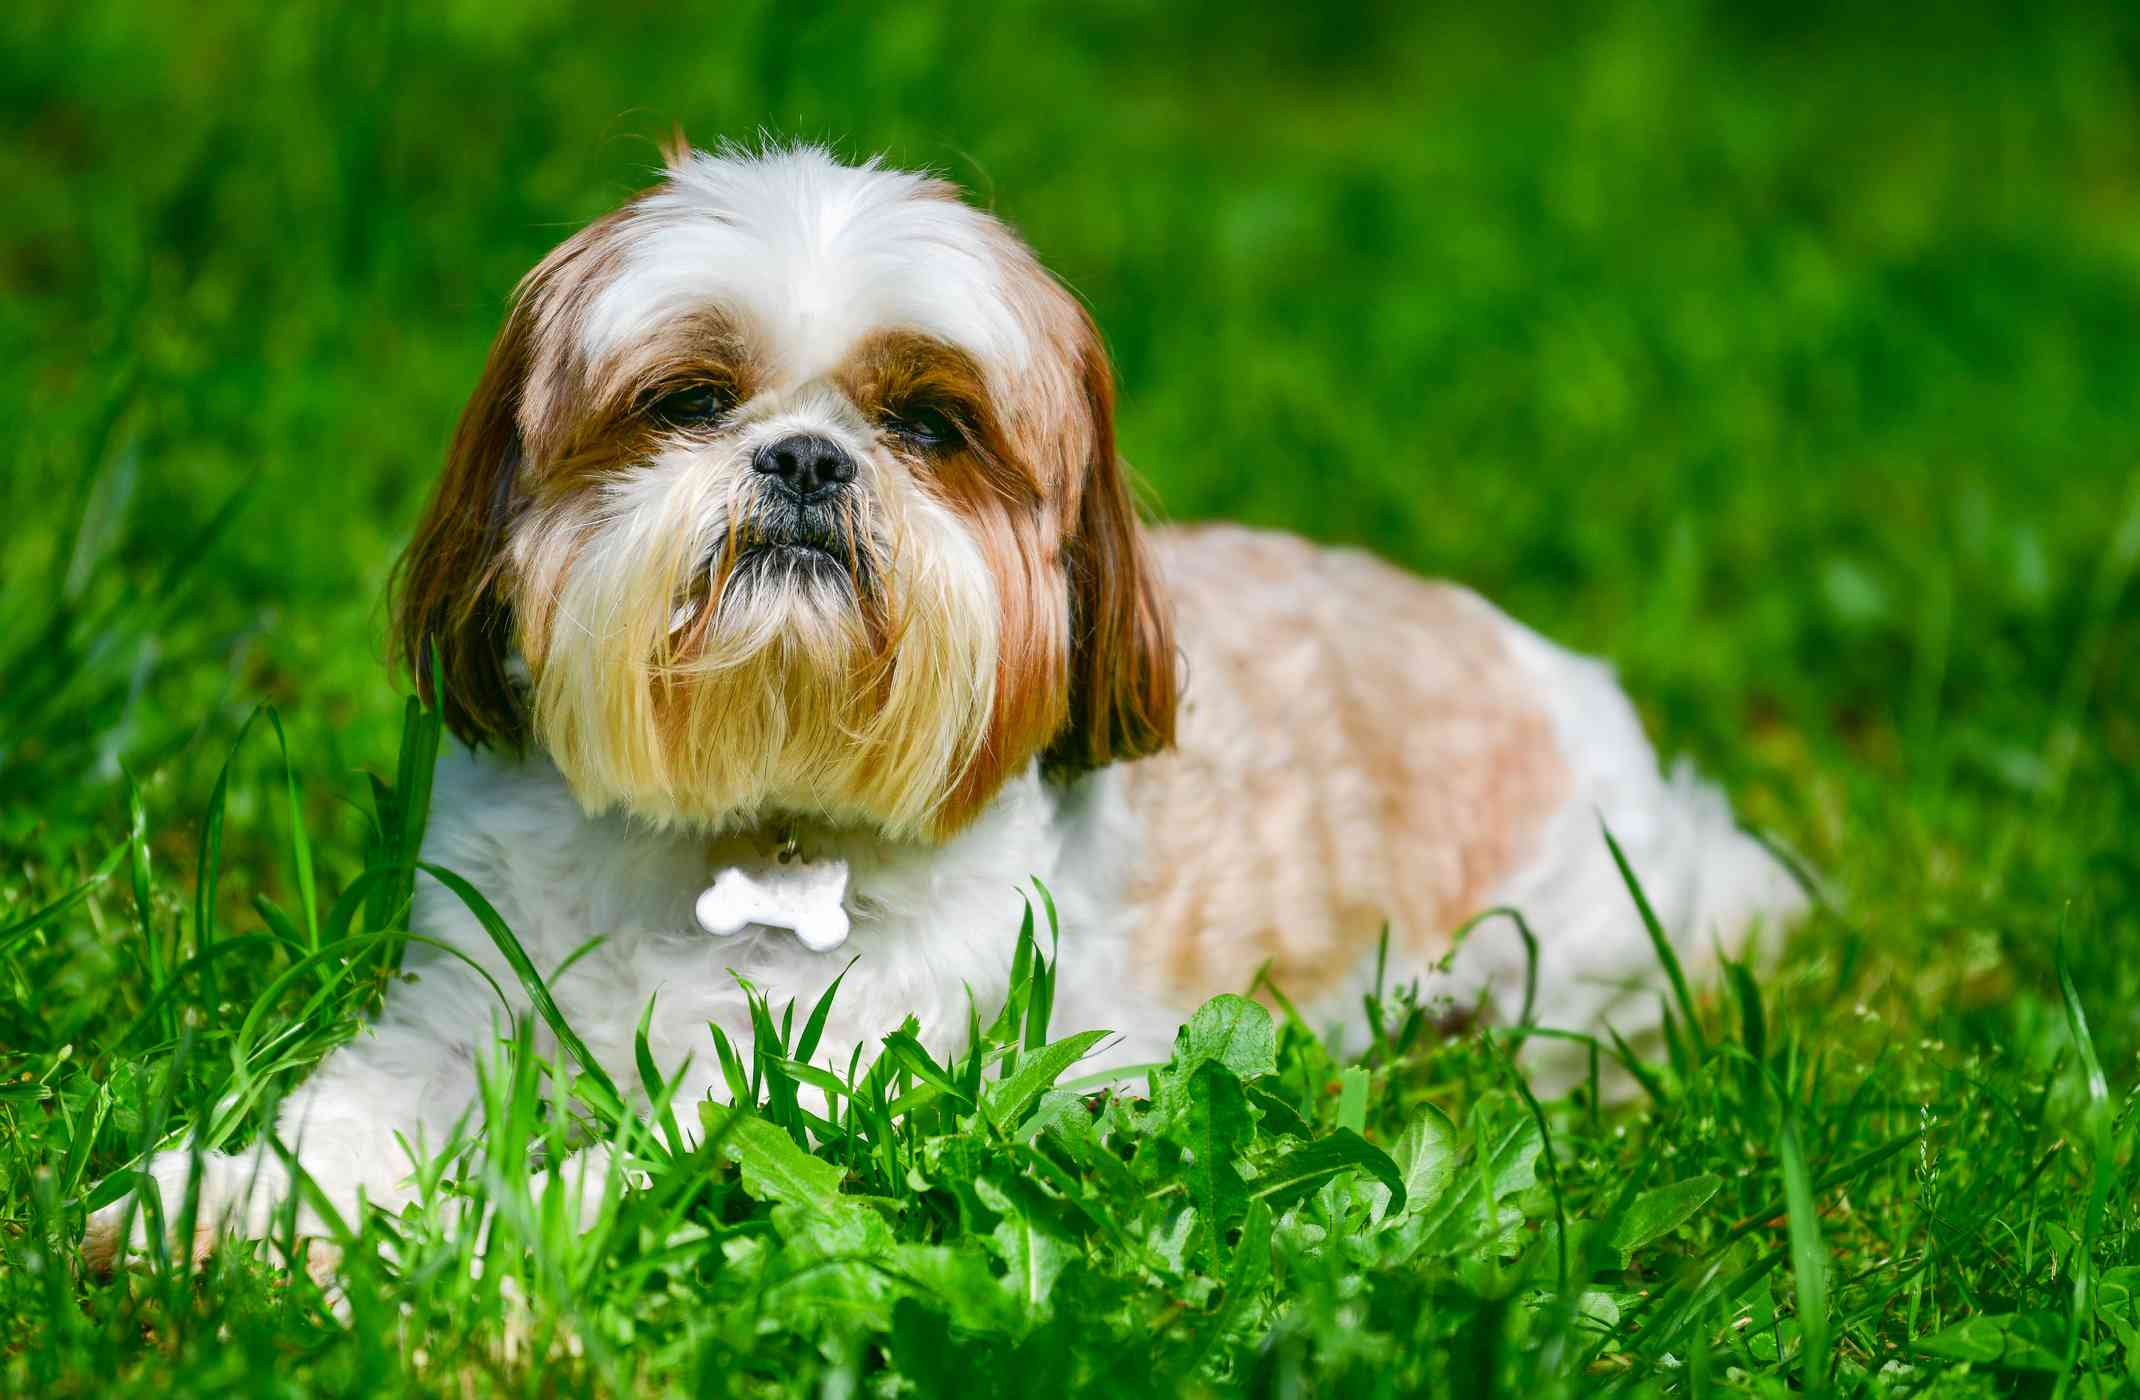 A tan and white shih tzu laying in a grassy field with its paws outstretched